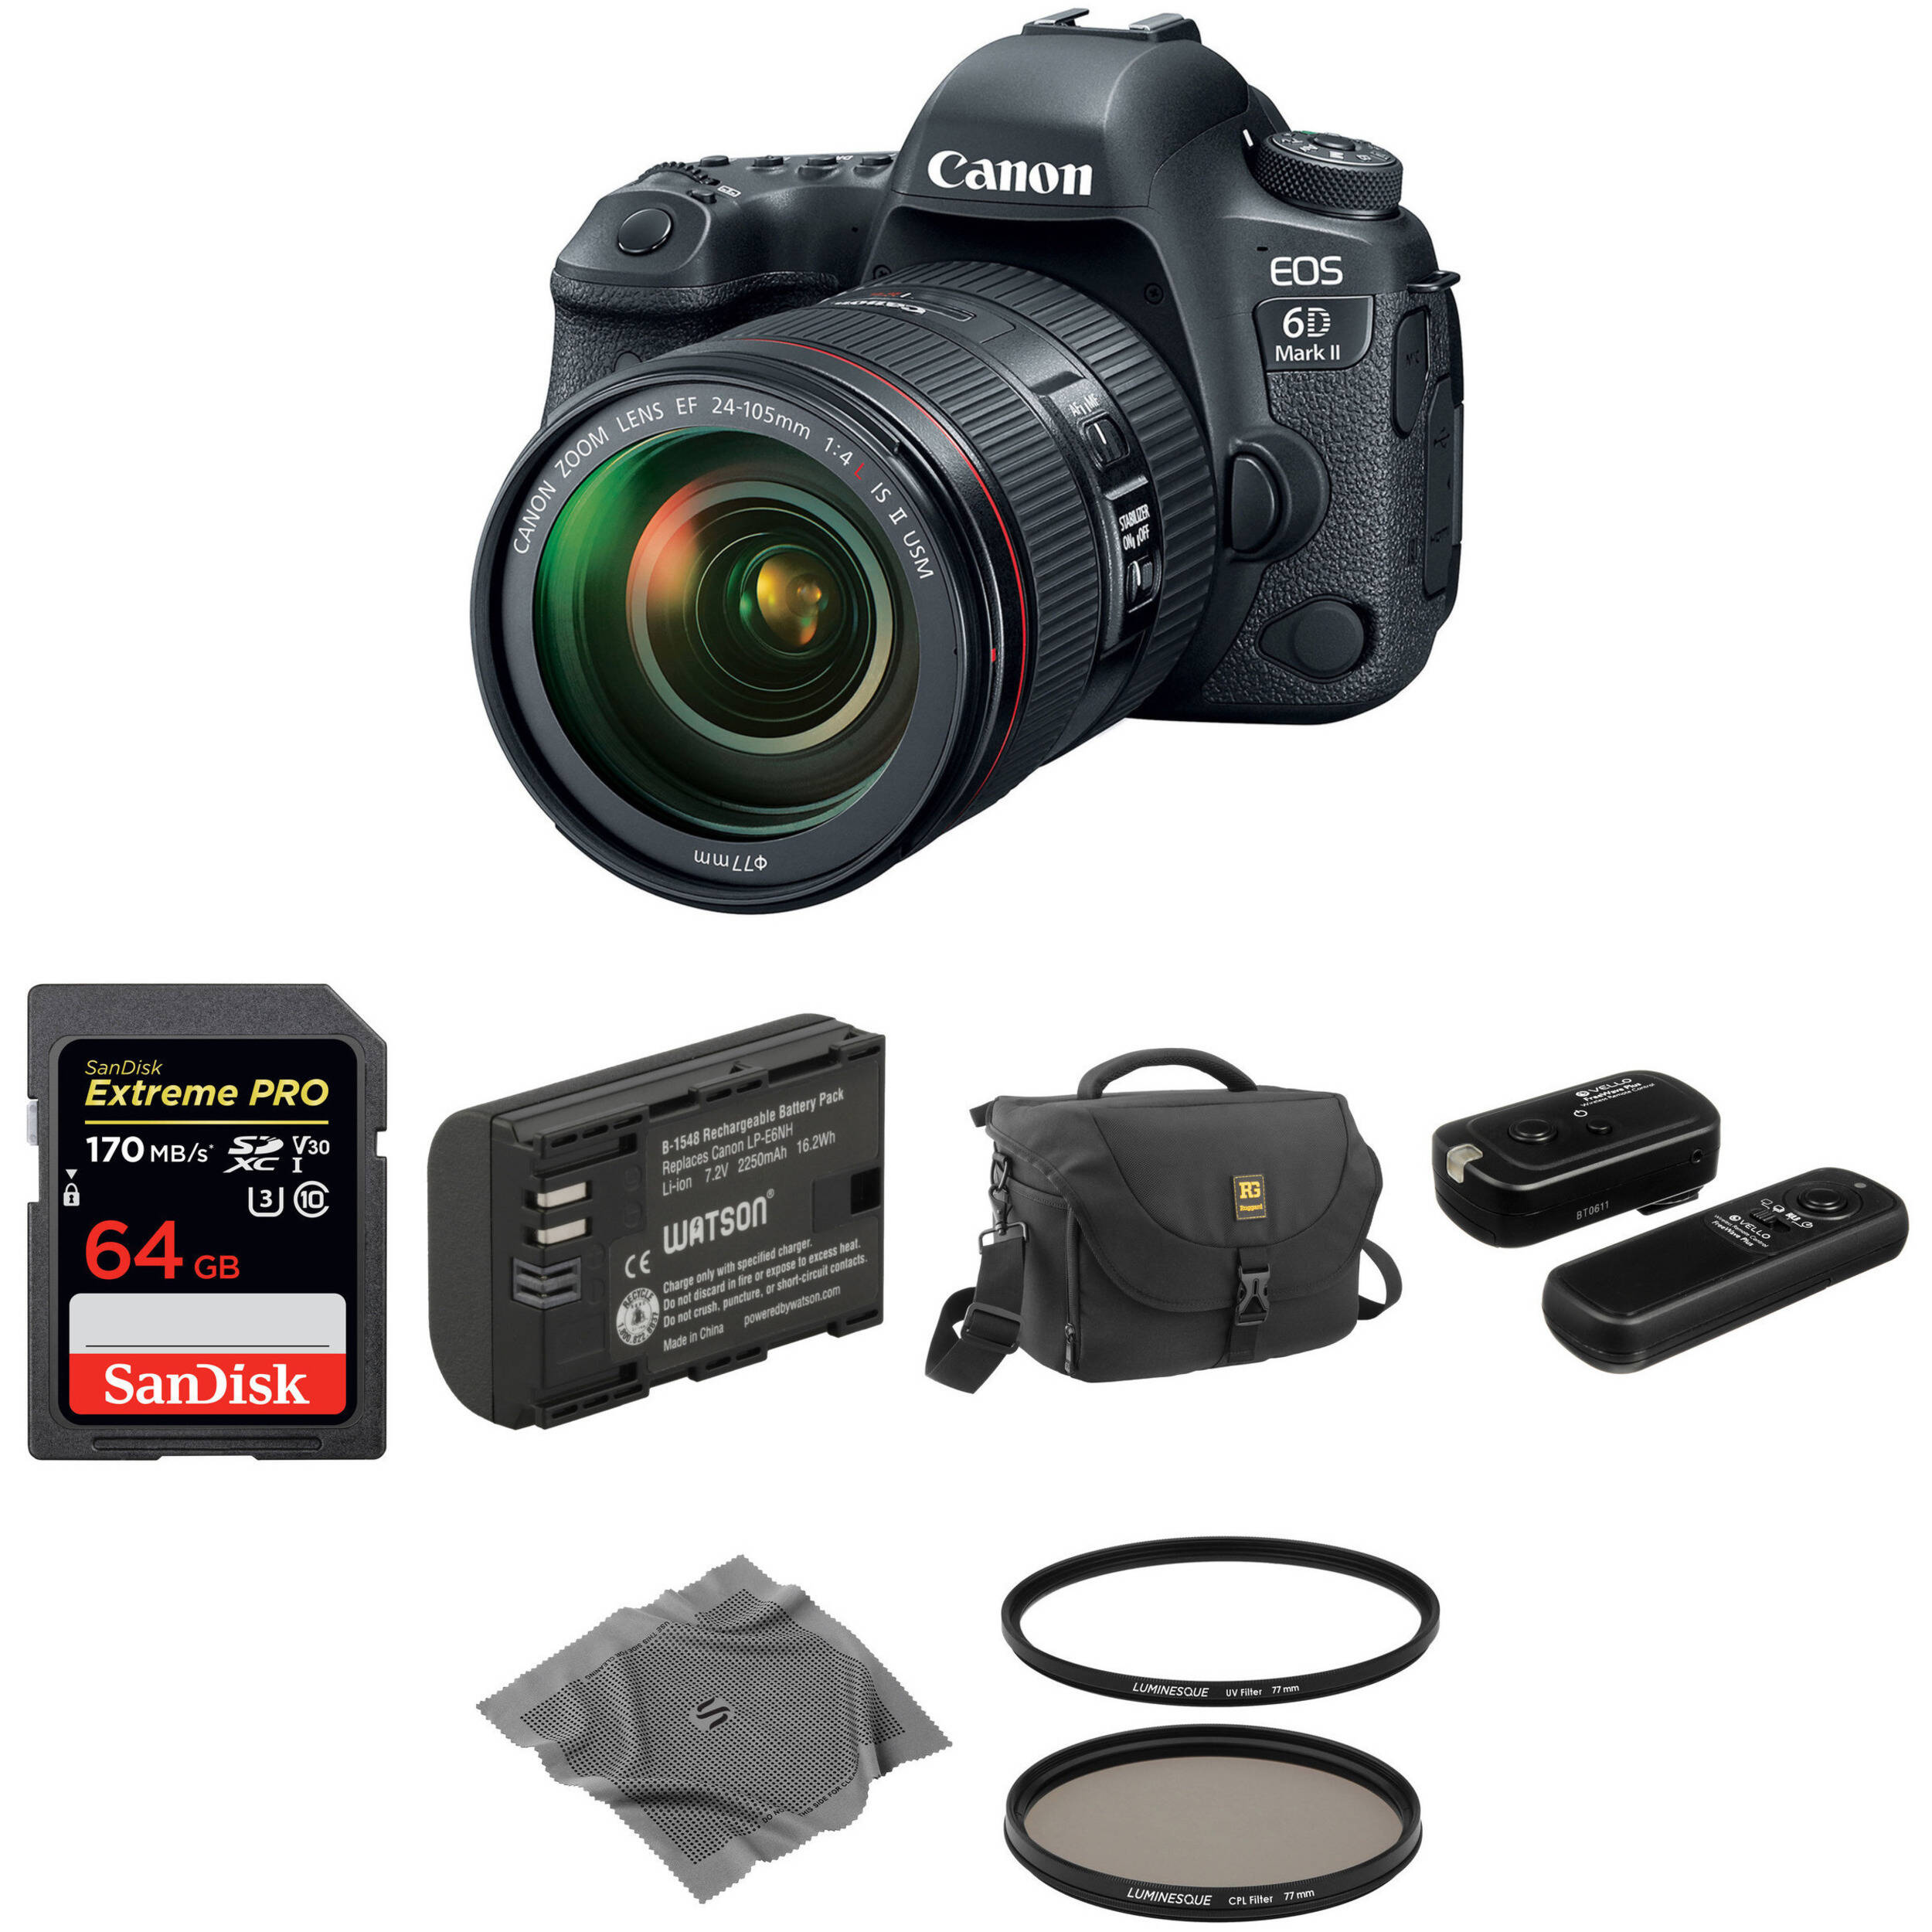 Canon EOS 6D Mark II DSLR Camera with 24-105mm f/4 Lens Basic Kit